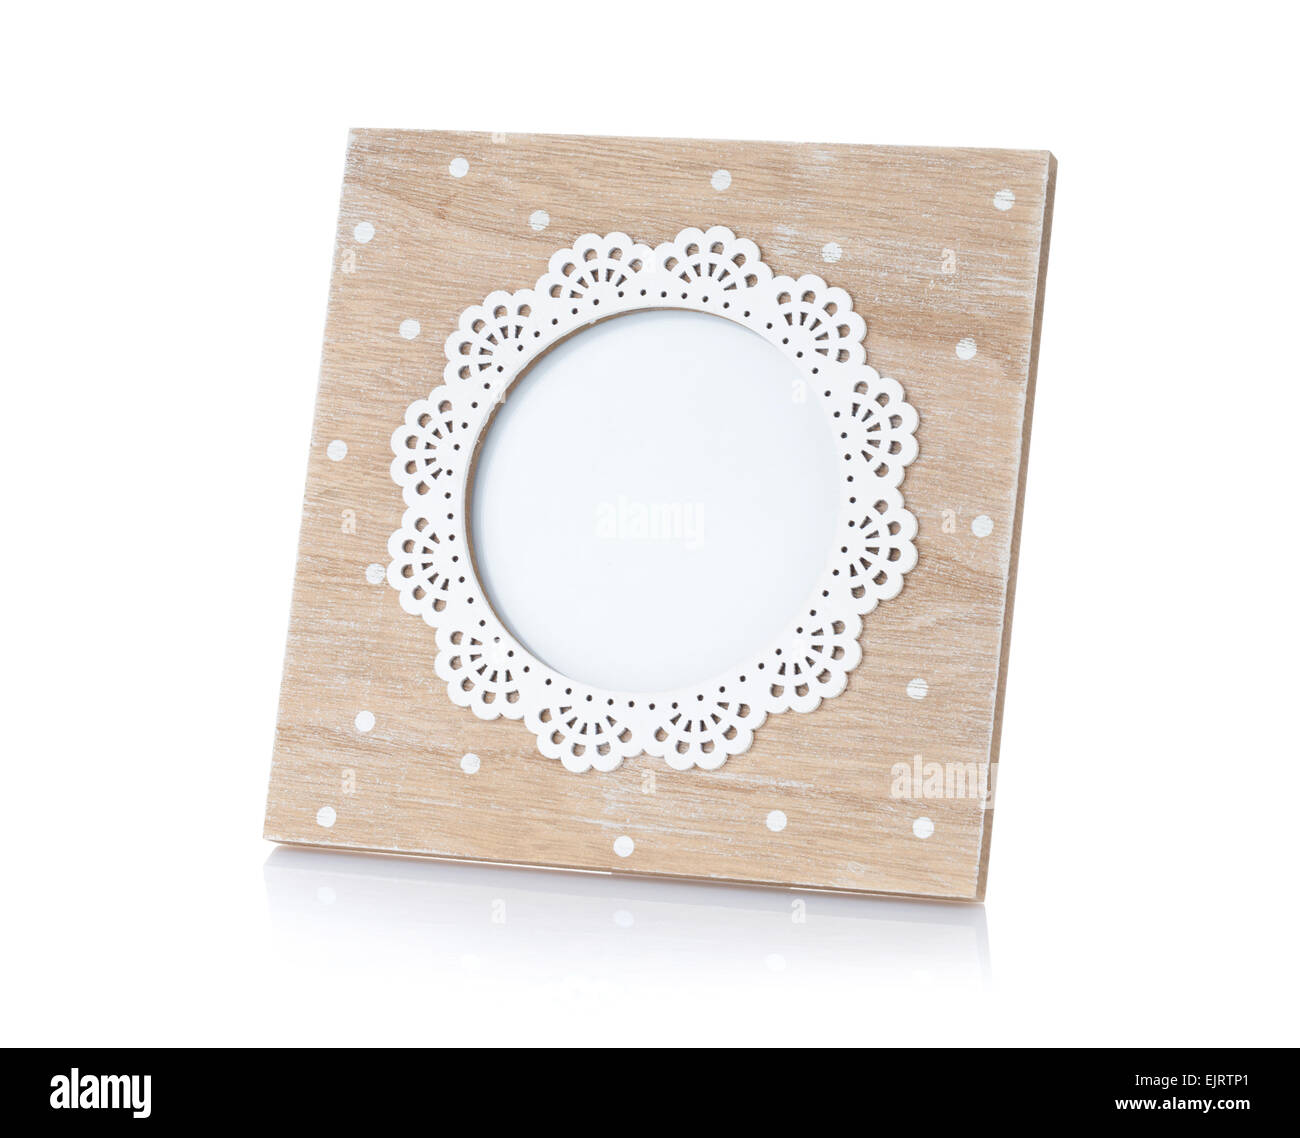 Round Vintage Frame On White Stockfotos & Round Vintage Frame On ...